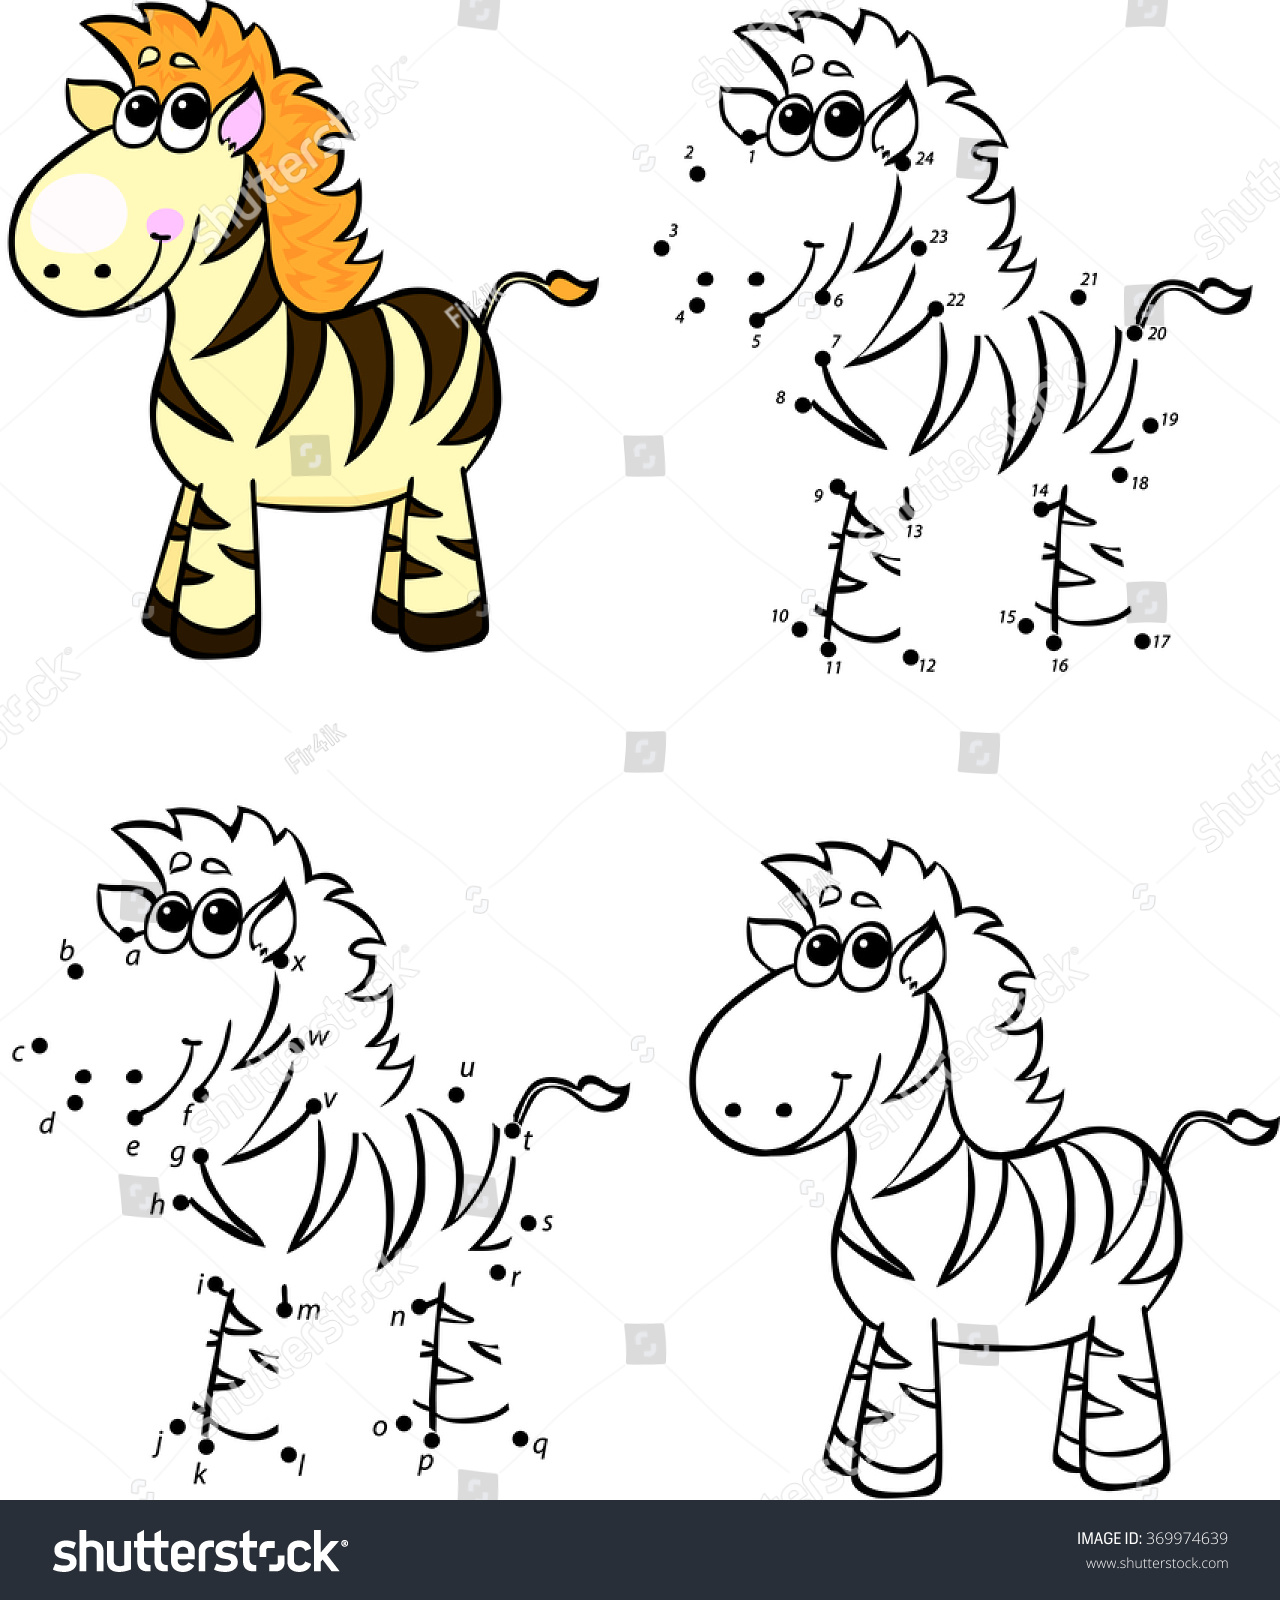 cartoon zebra illustration coloring and dot to dot educational game for kids